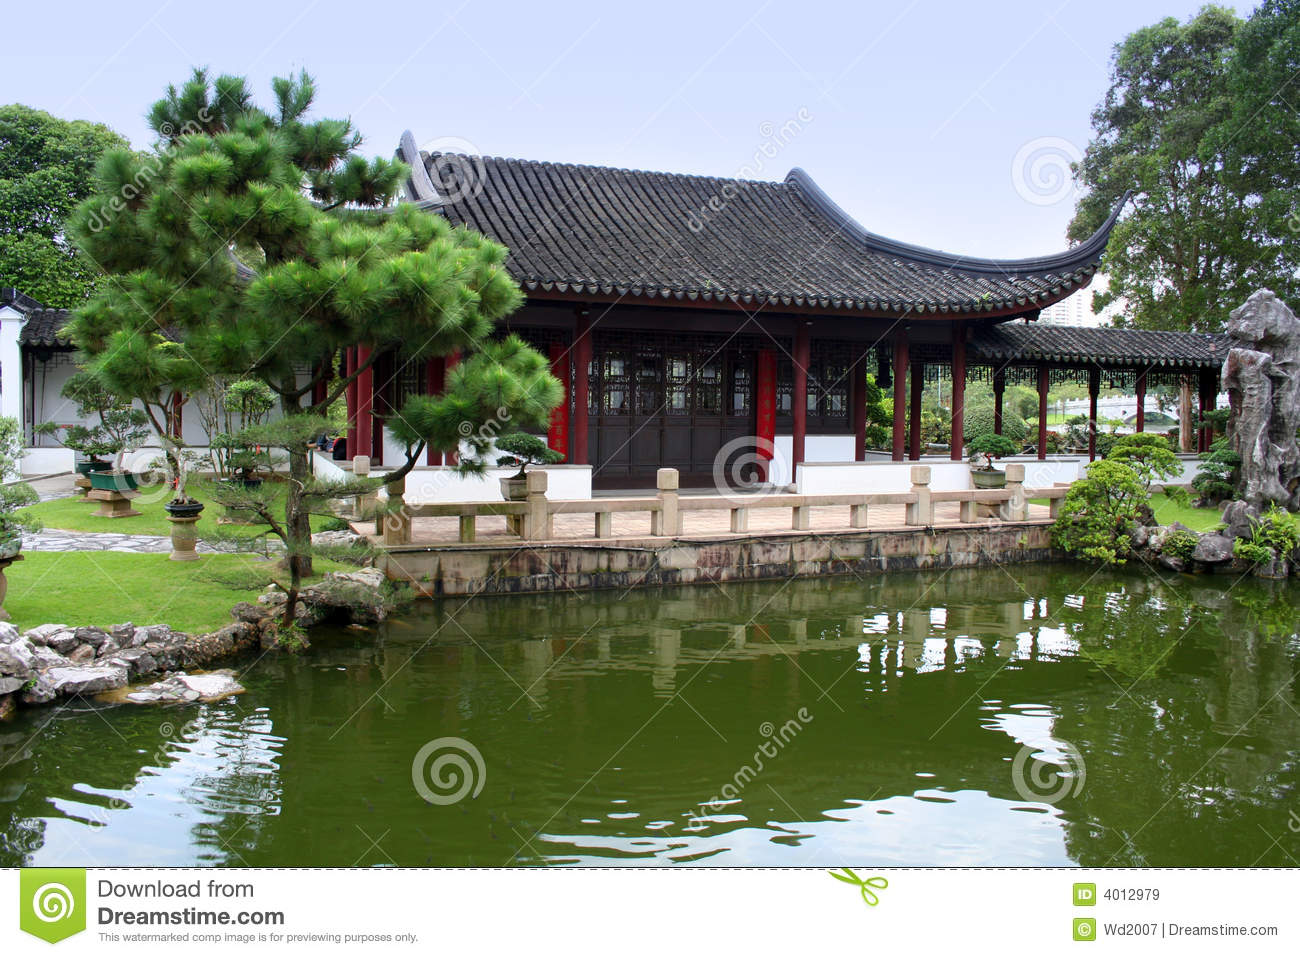 Japanese house and garden royalty free stock images for Japanese house garden